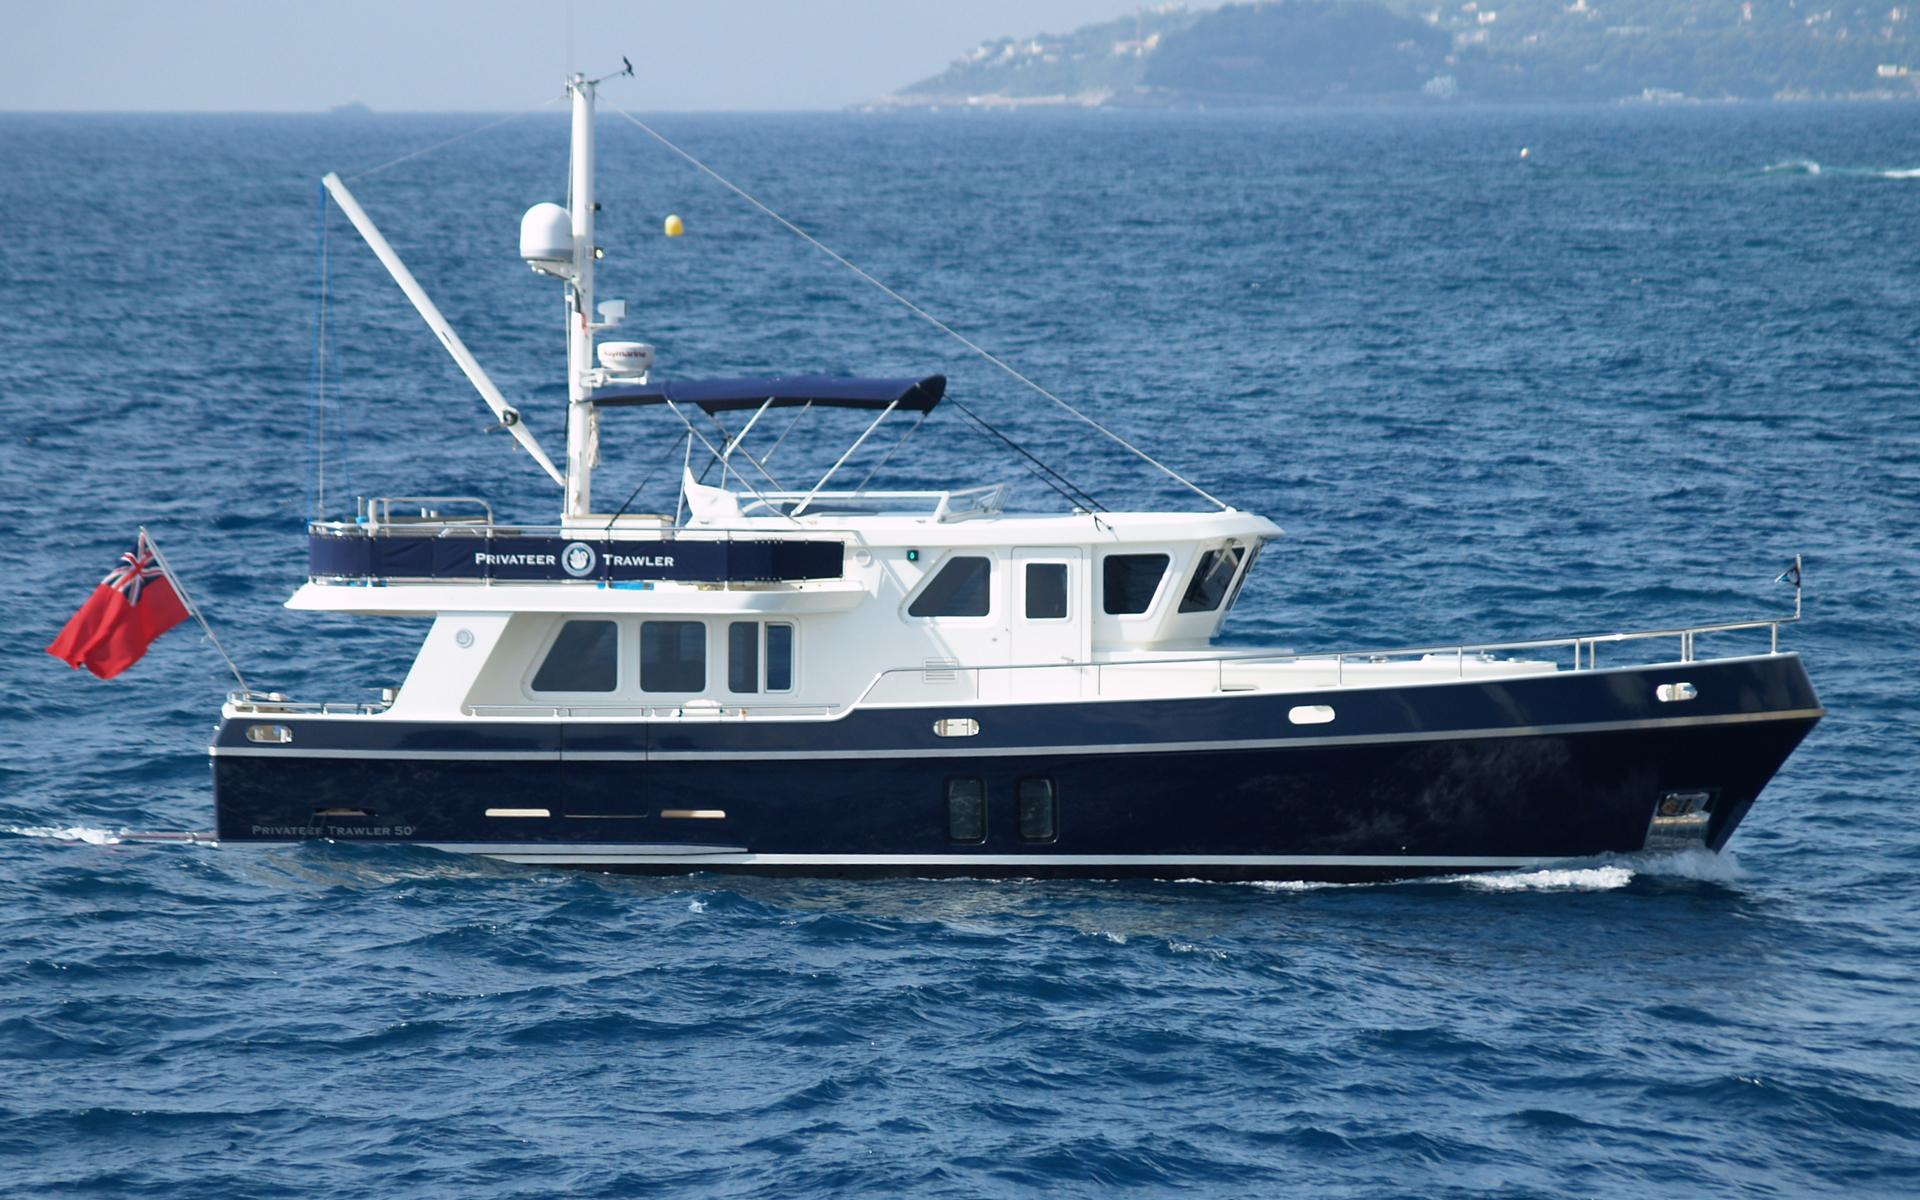 2012 Privateer Trawler 50 Power Boat For Sale Www